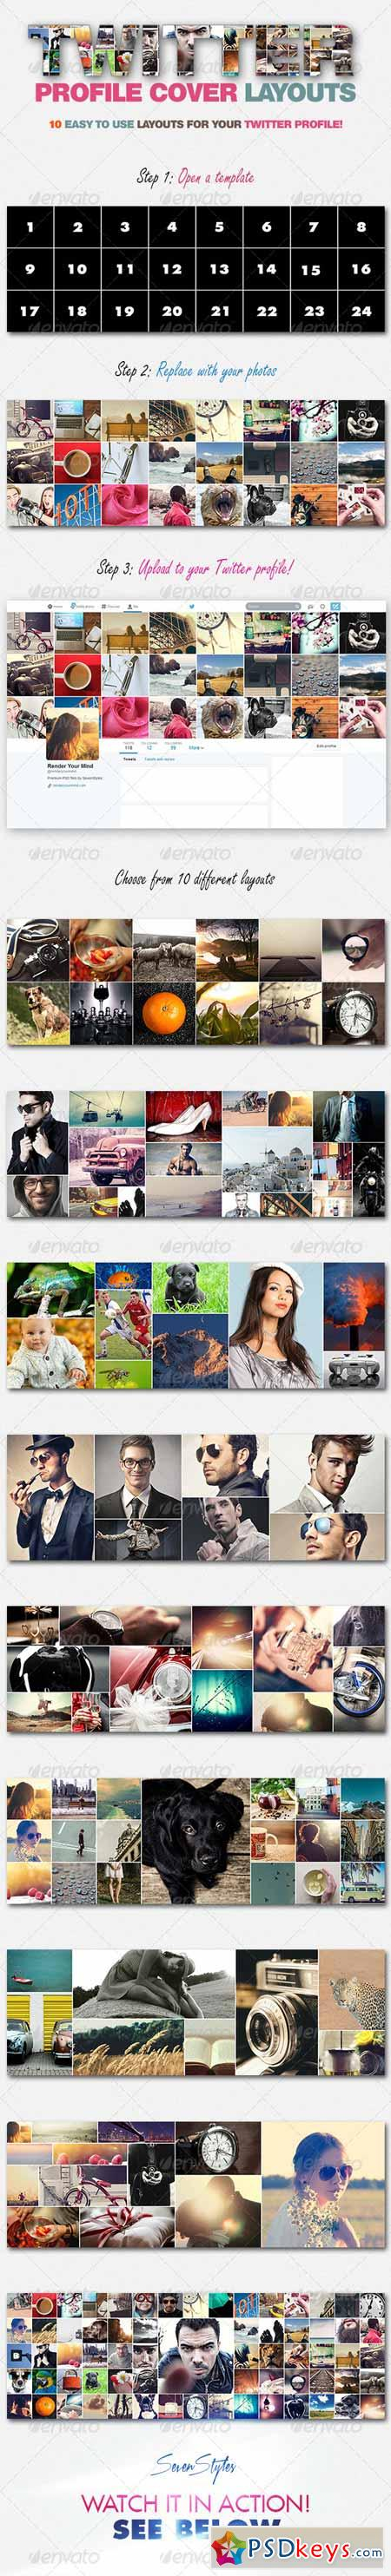 10 Twitter Profile Cover Templates 7672247